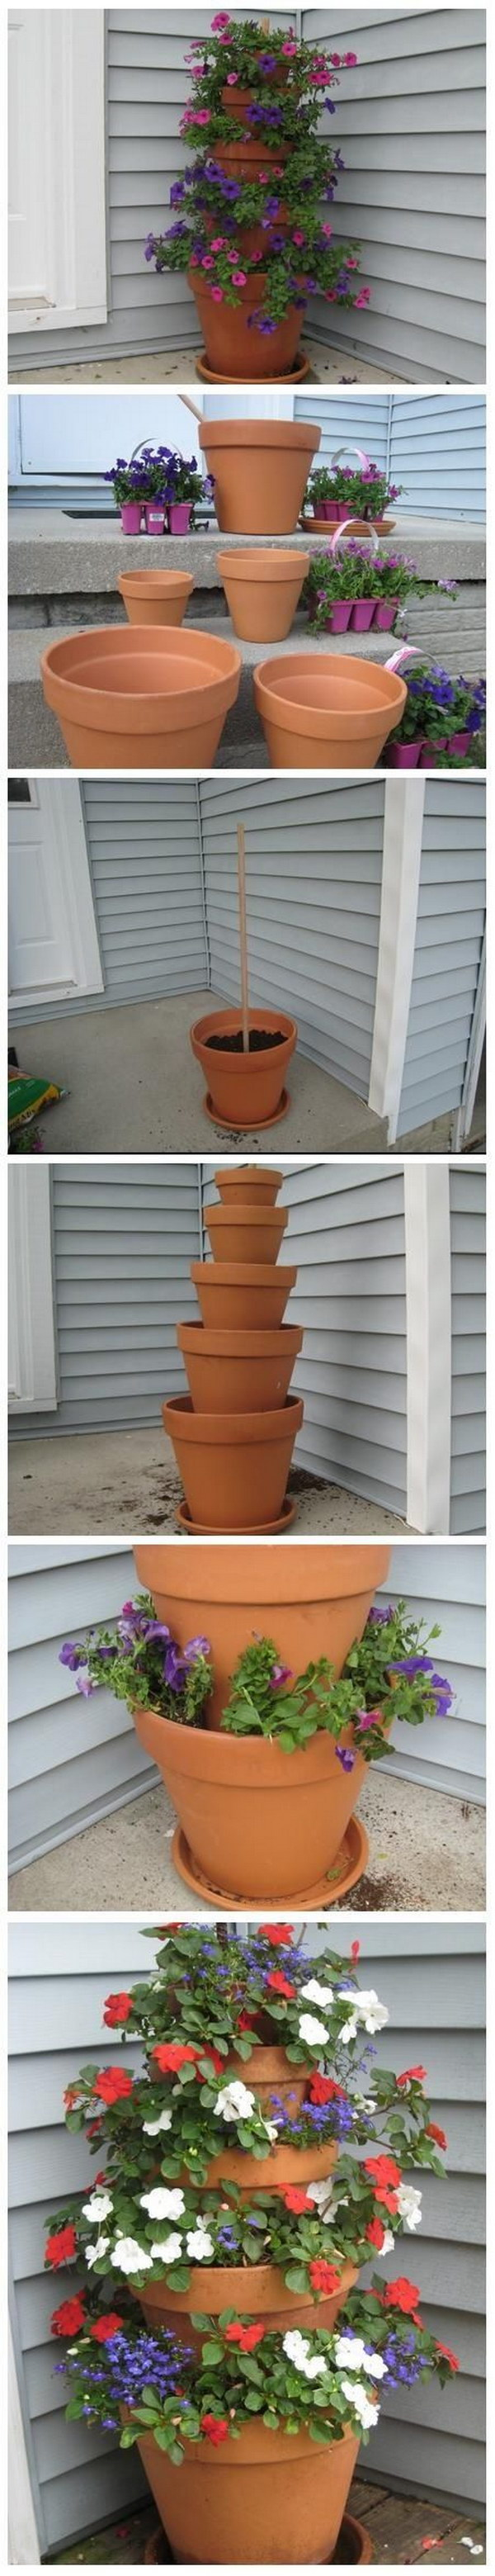 DIY Terra Cotta Pot Flower Tower Garden